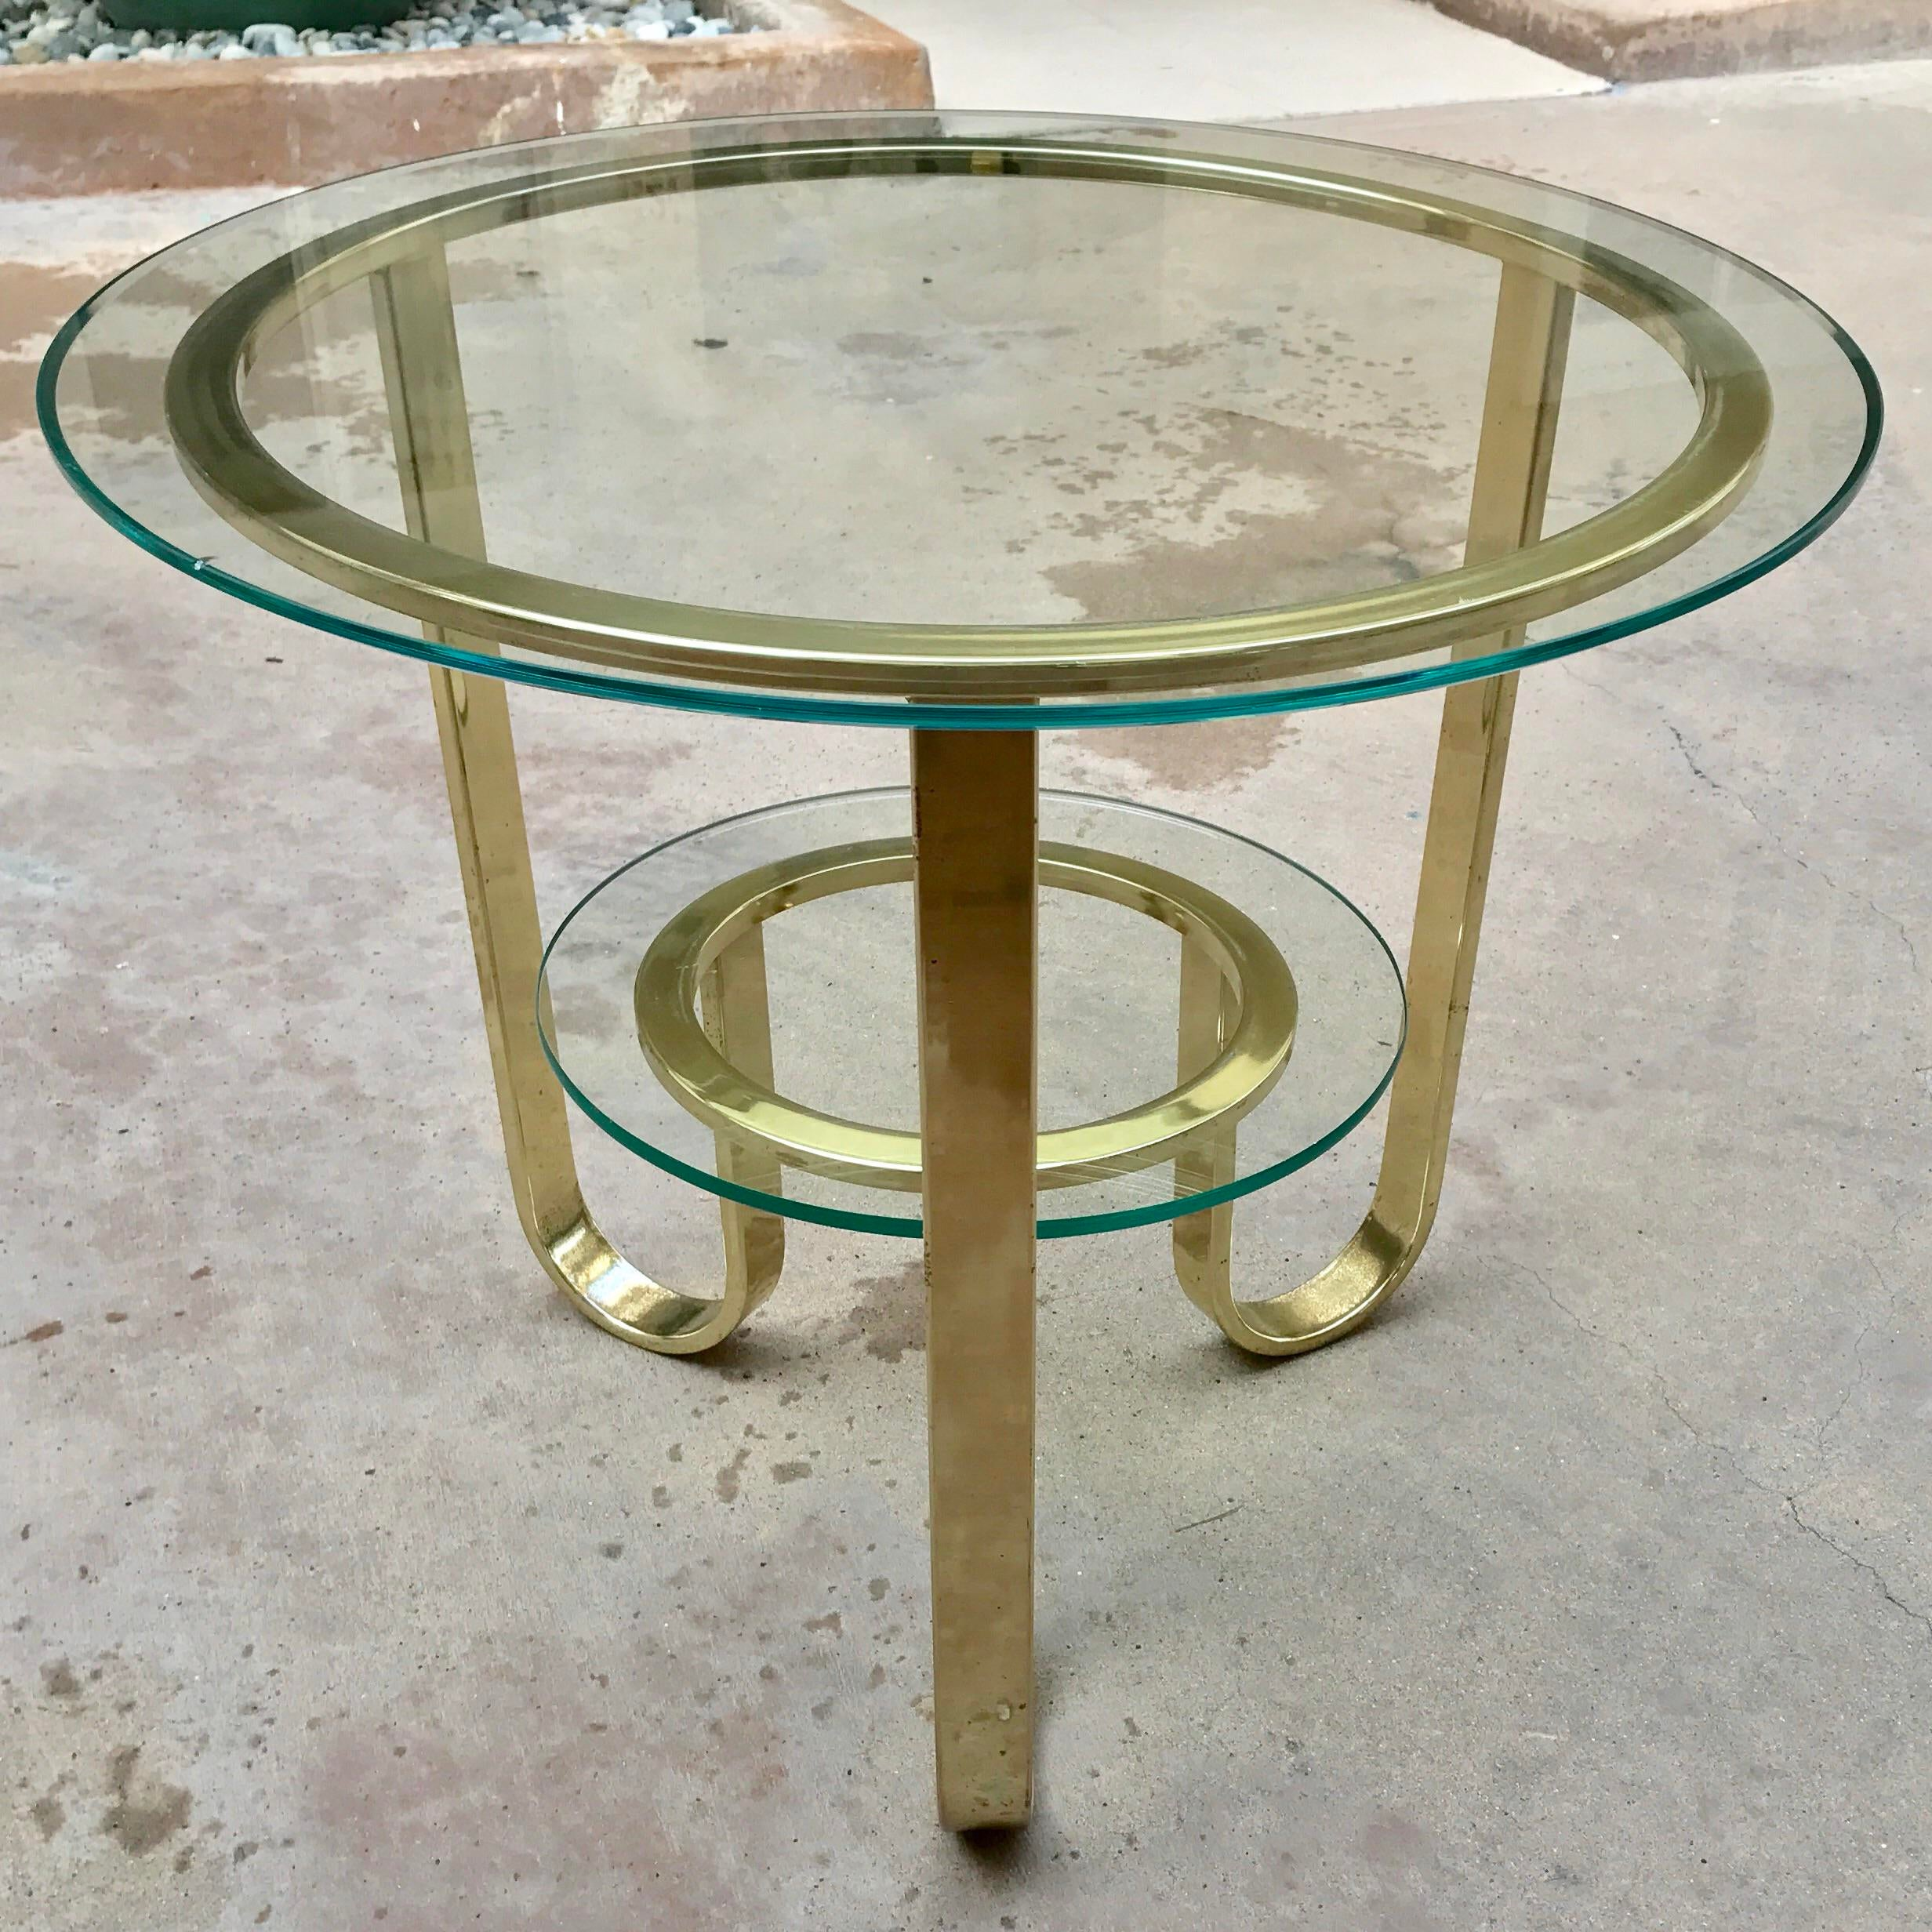 Captivating Milo Baughman For DIA Brass U0026 Glass Accent Table   Image 3 Of 10